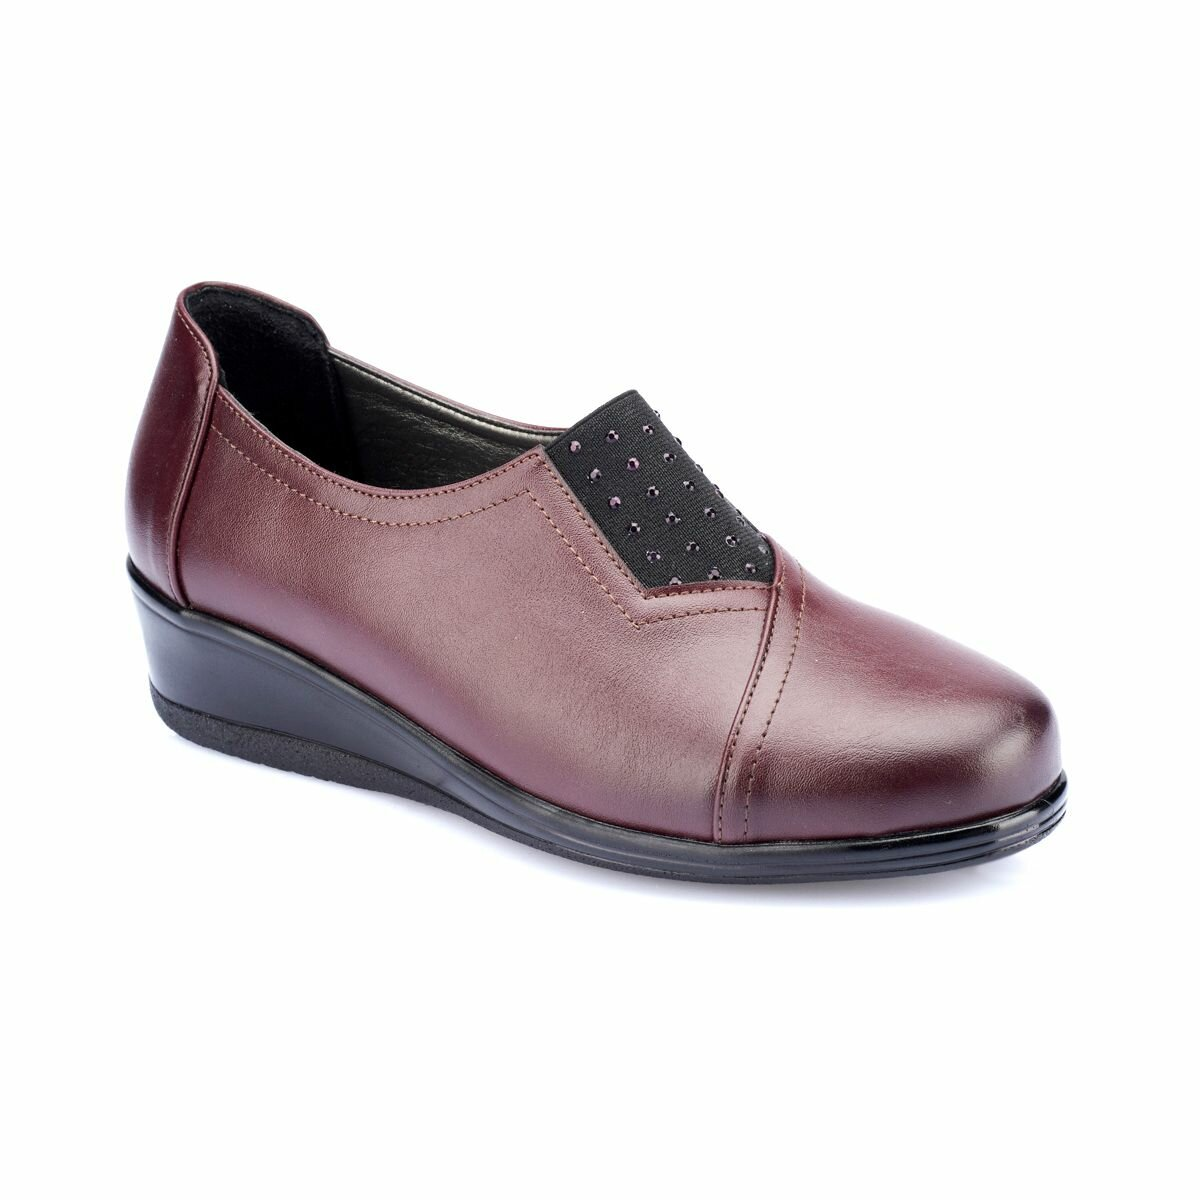 FLO 82. 150014.Z Burgundy Women 'S Shoes Polaris